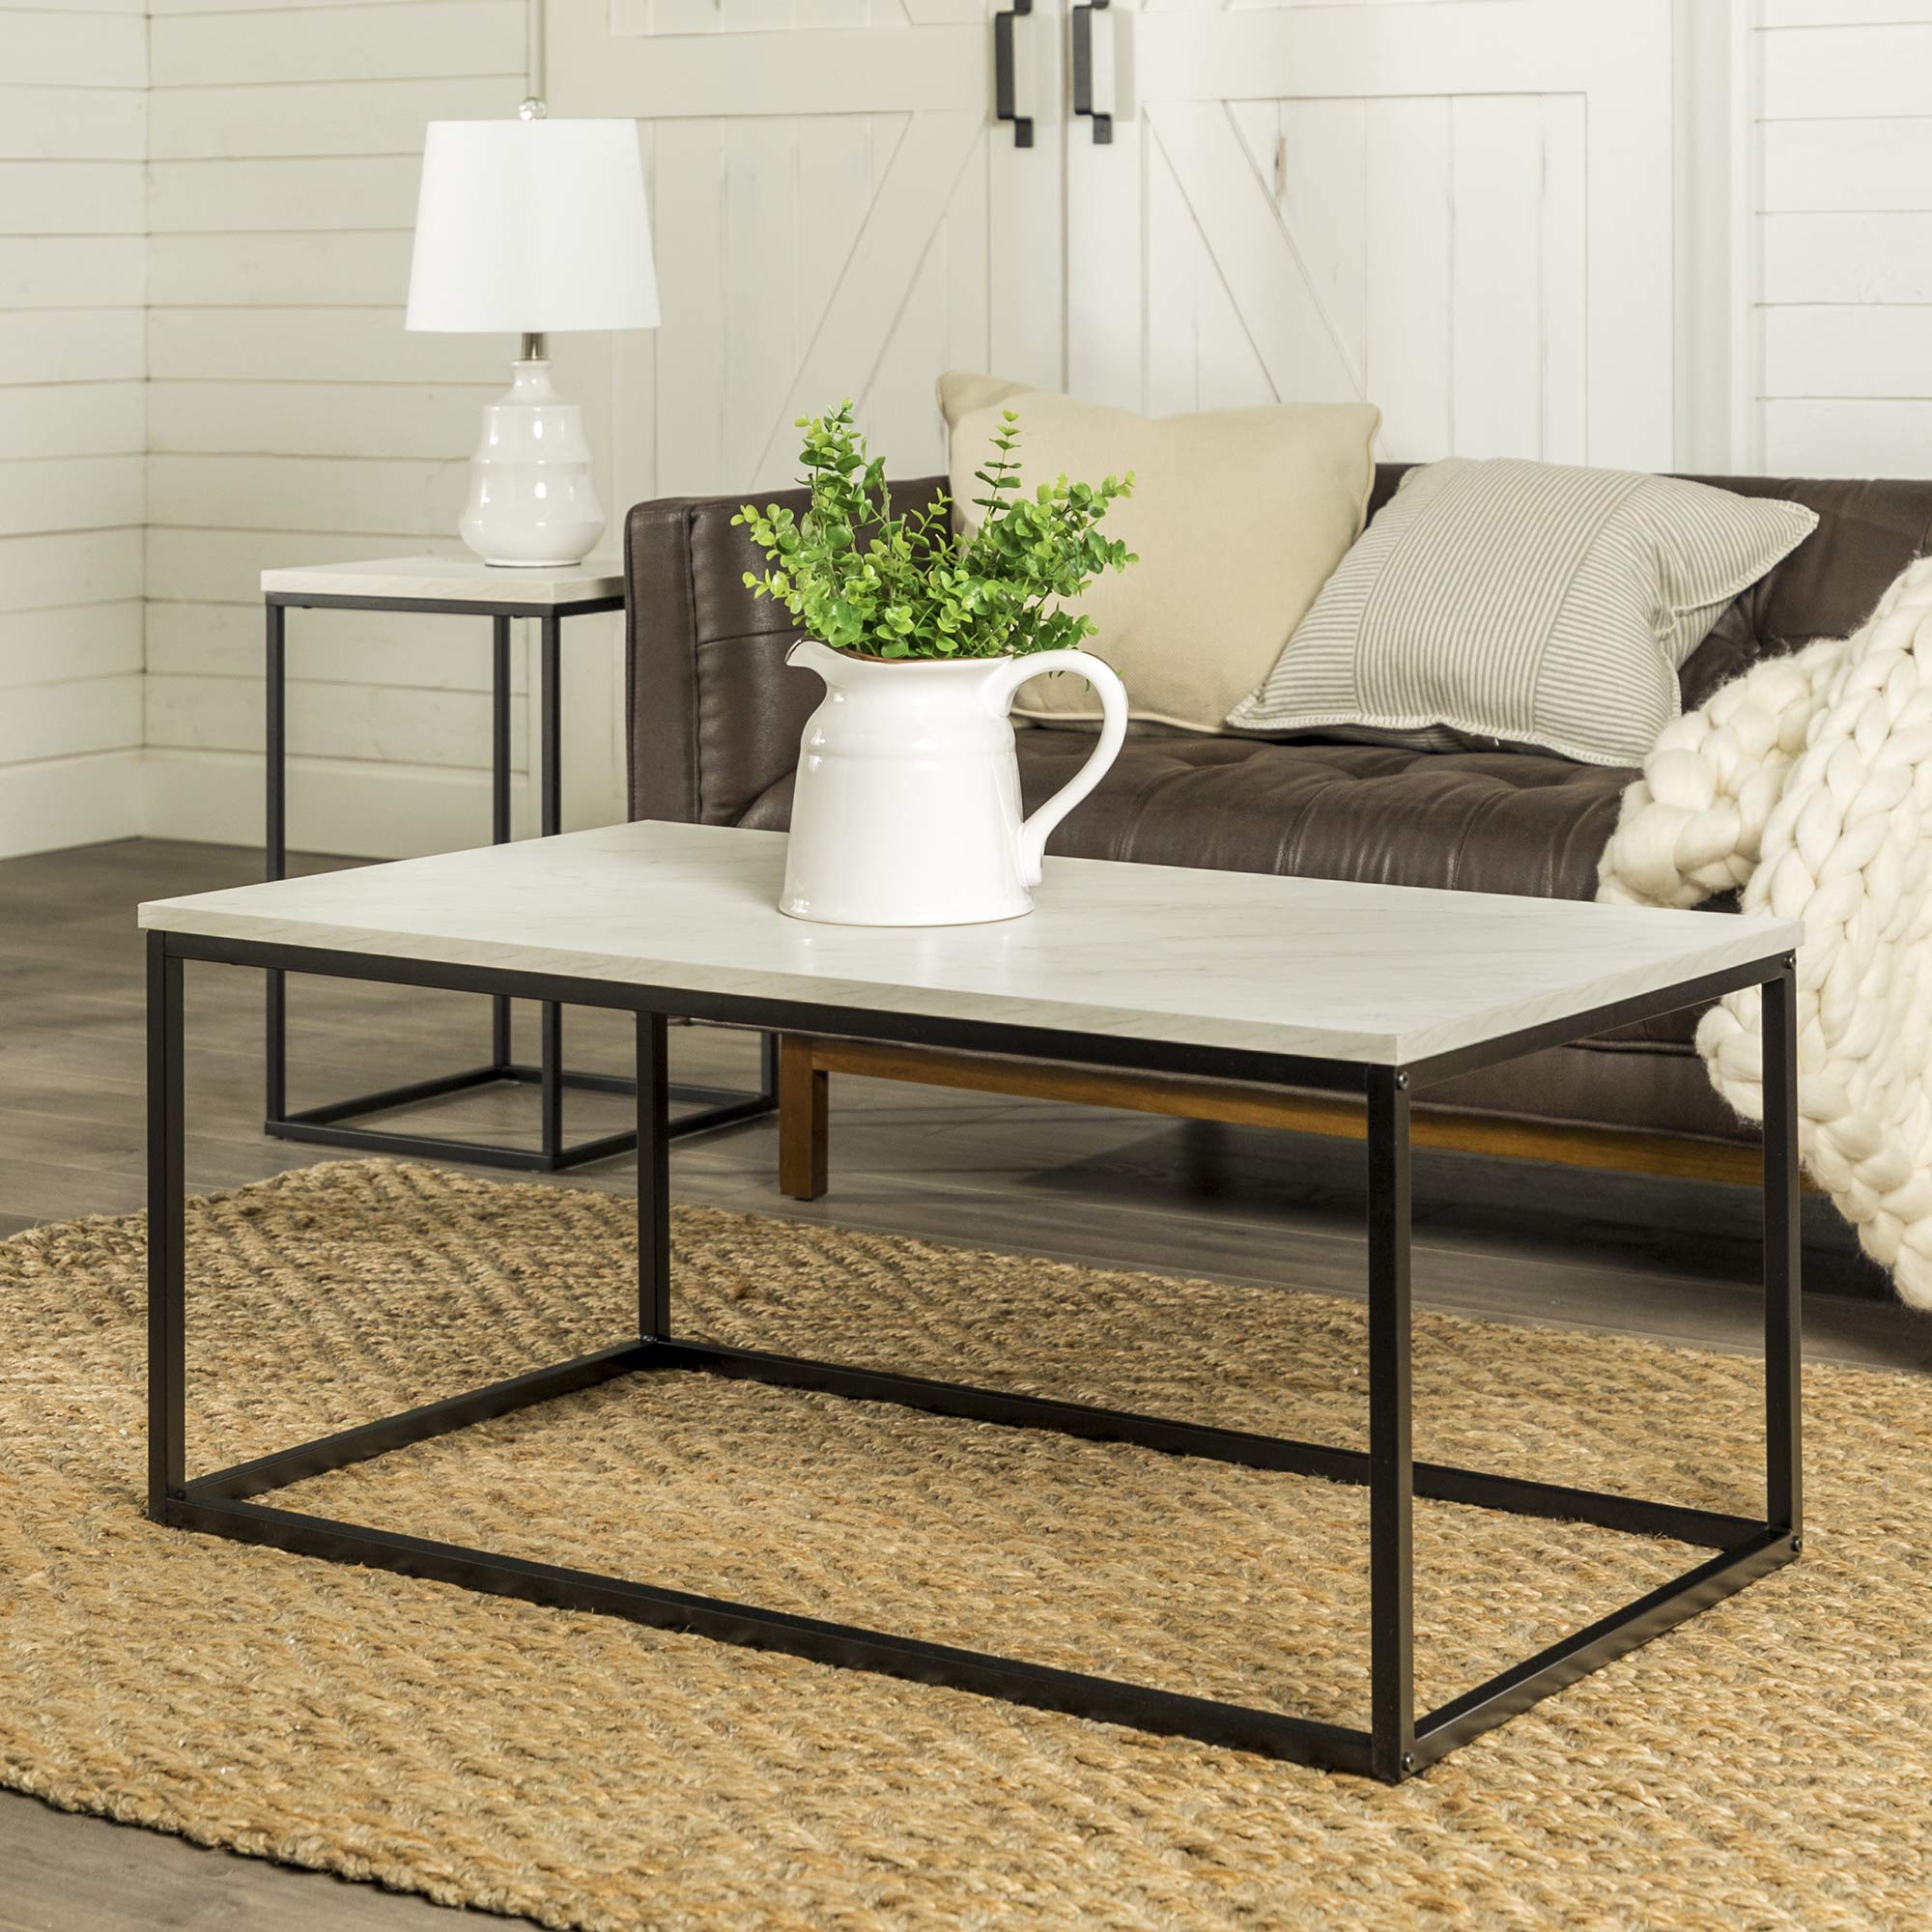 WE Furniture Modern Open Rectangle Coffee Accent Table Living Room, 42 Inch, White Marble by WE Furniture